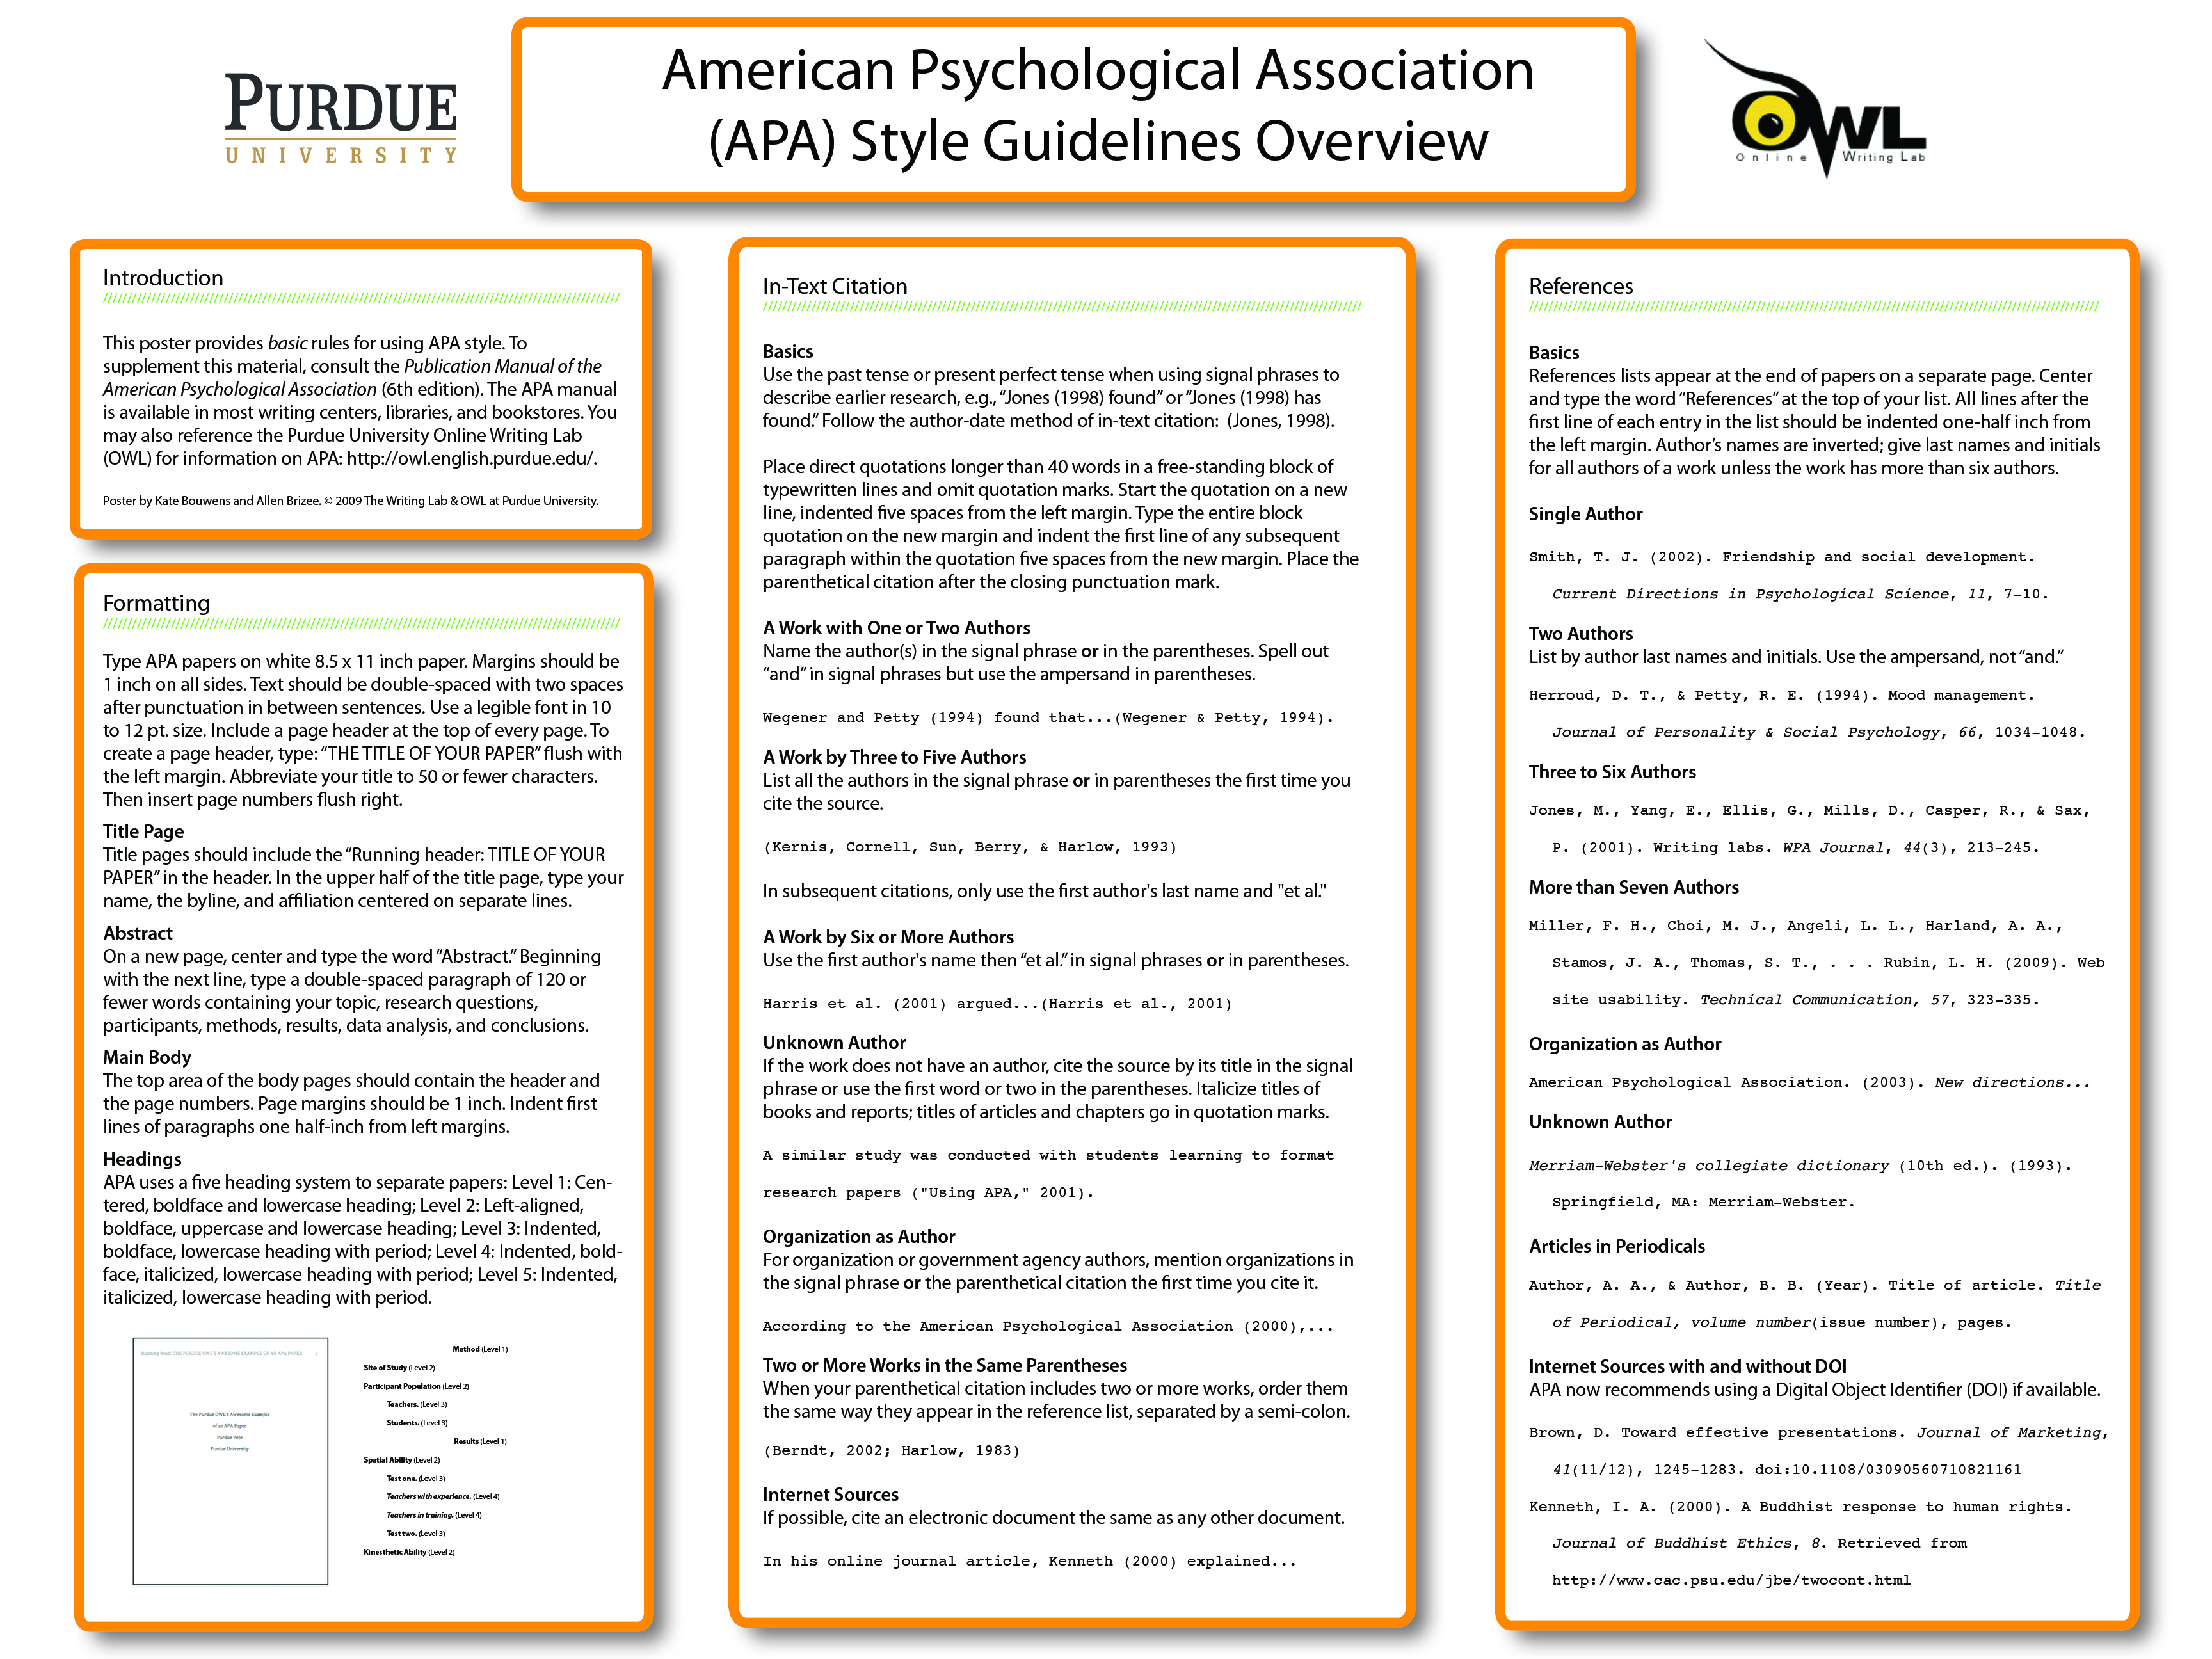 003 Research Paper Purdue Owl Stunning Citations Outline Example Sample Full